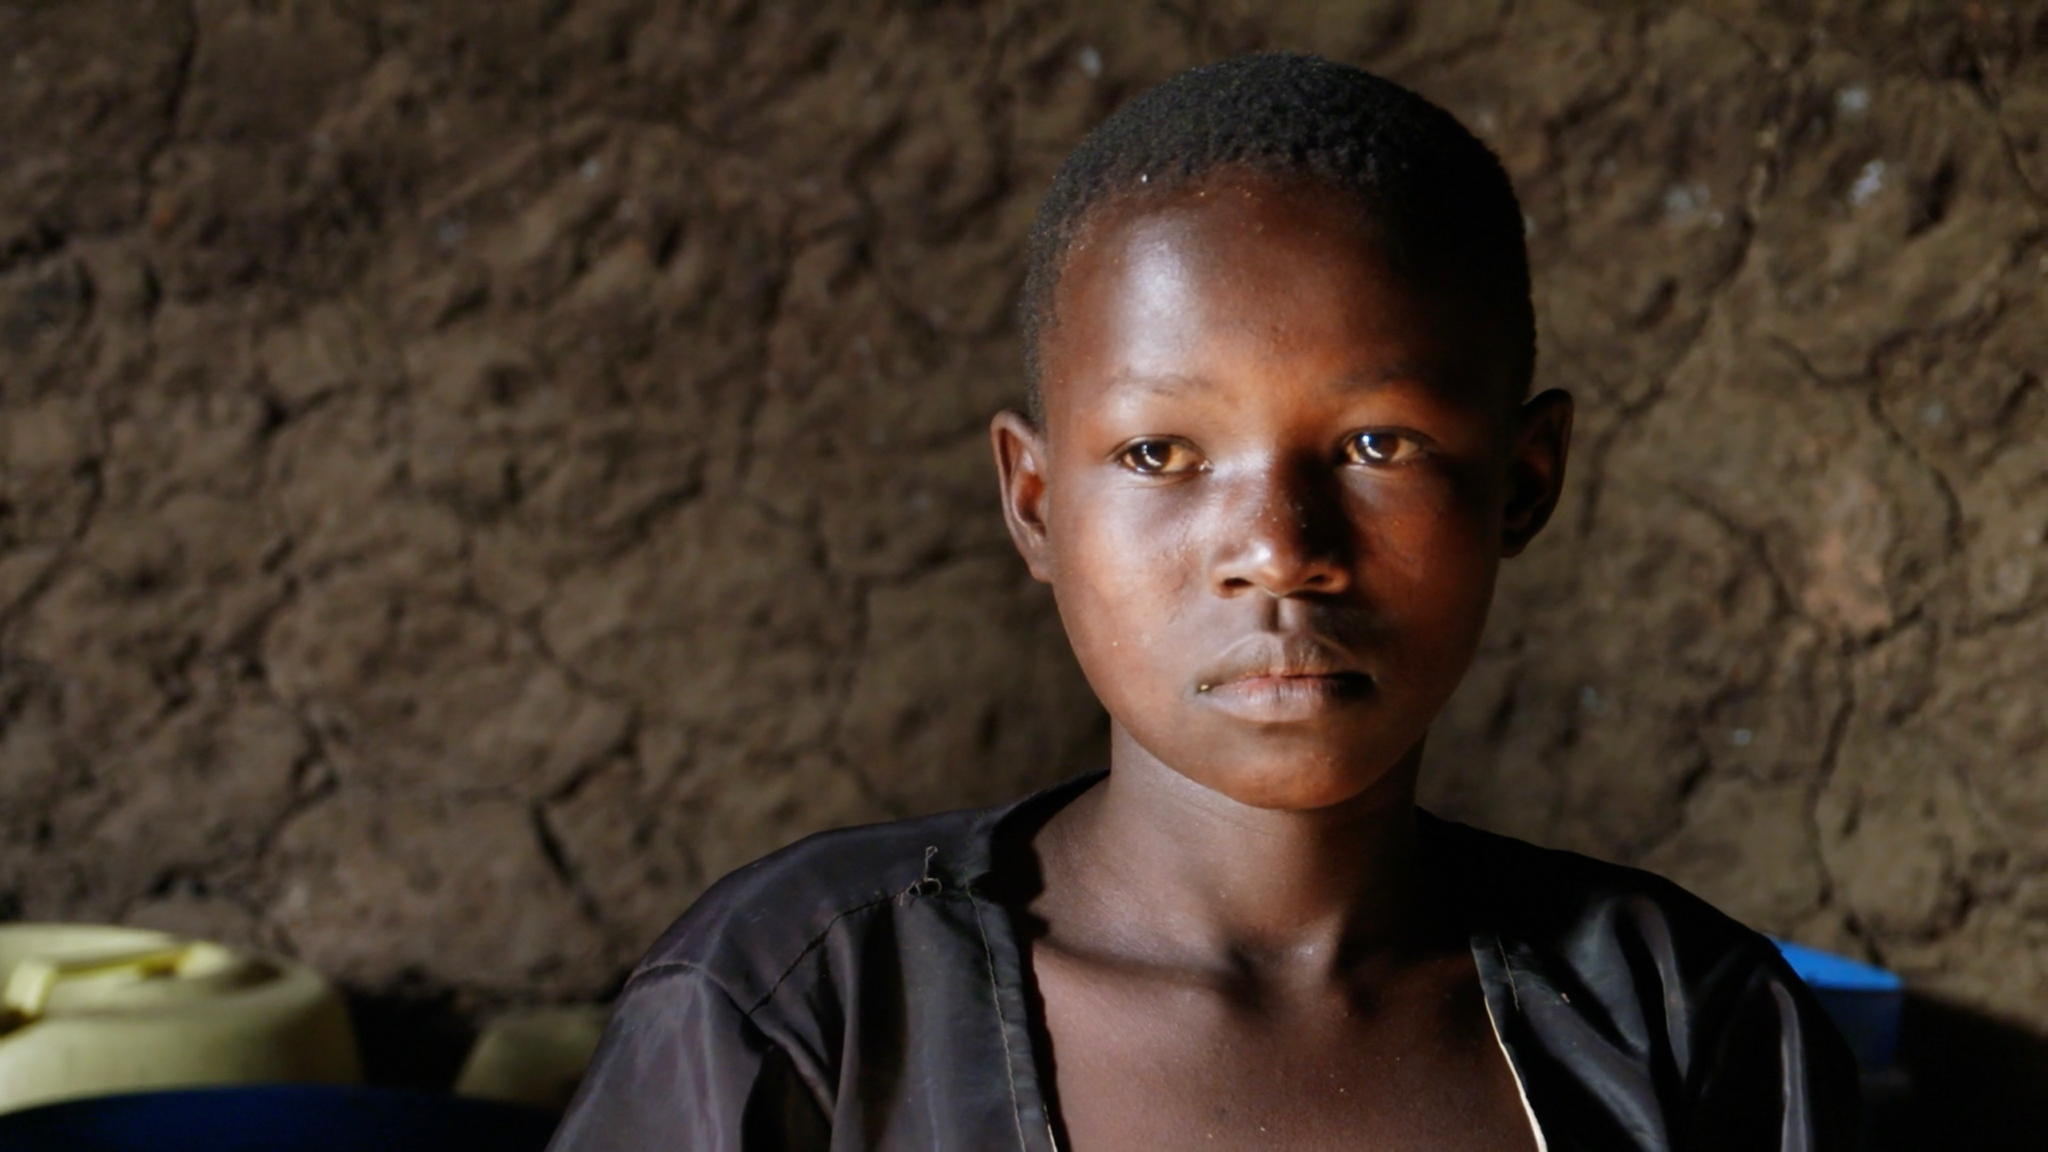 Across East Africa, young girls are faced with an unthinkable choices like that of Zawadi: Agree to be mutilated or save herself and escape, knowing that her father will beat her mother terribly because she supported her daughter's decision to run away.